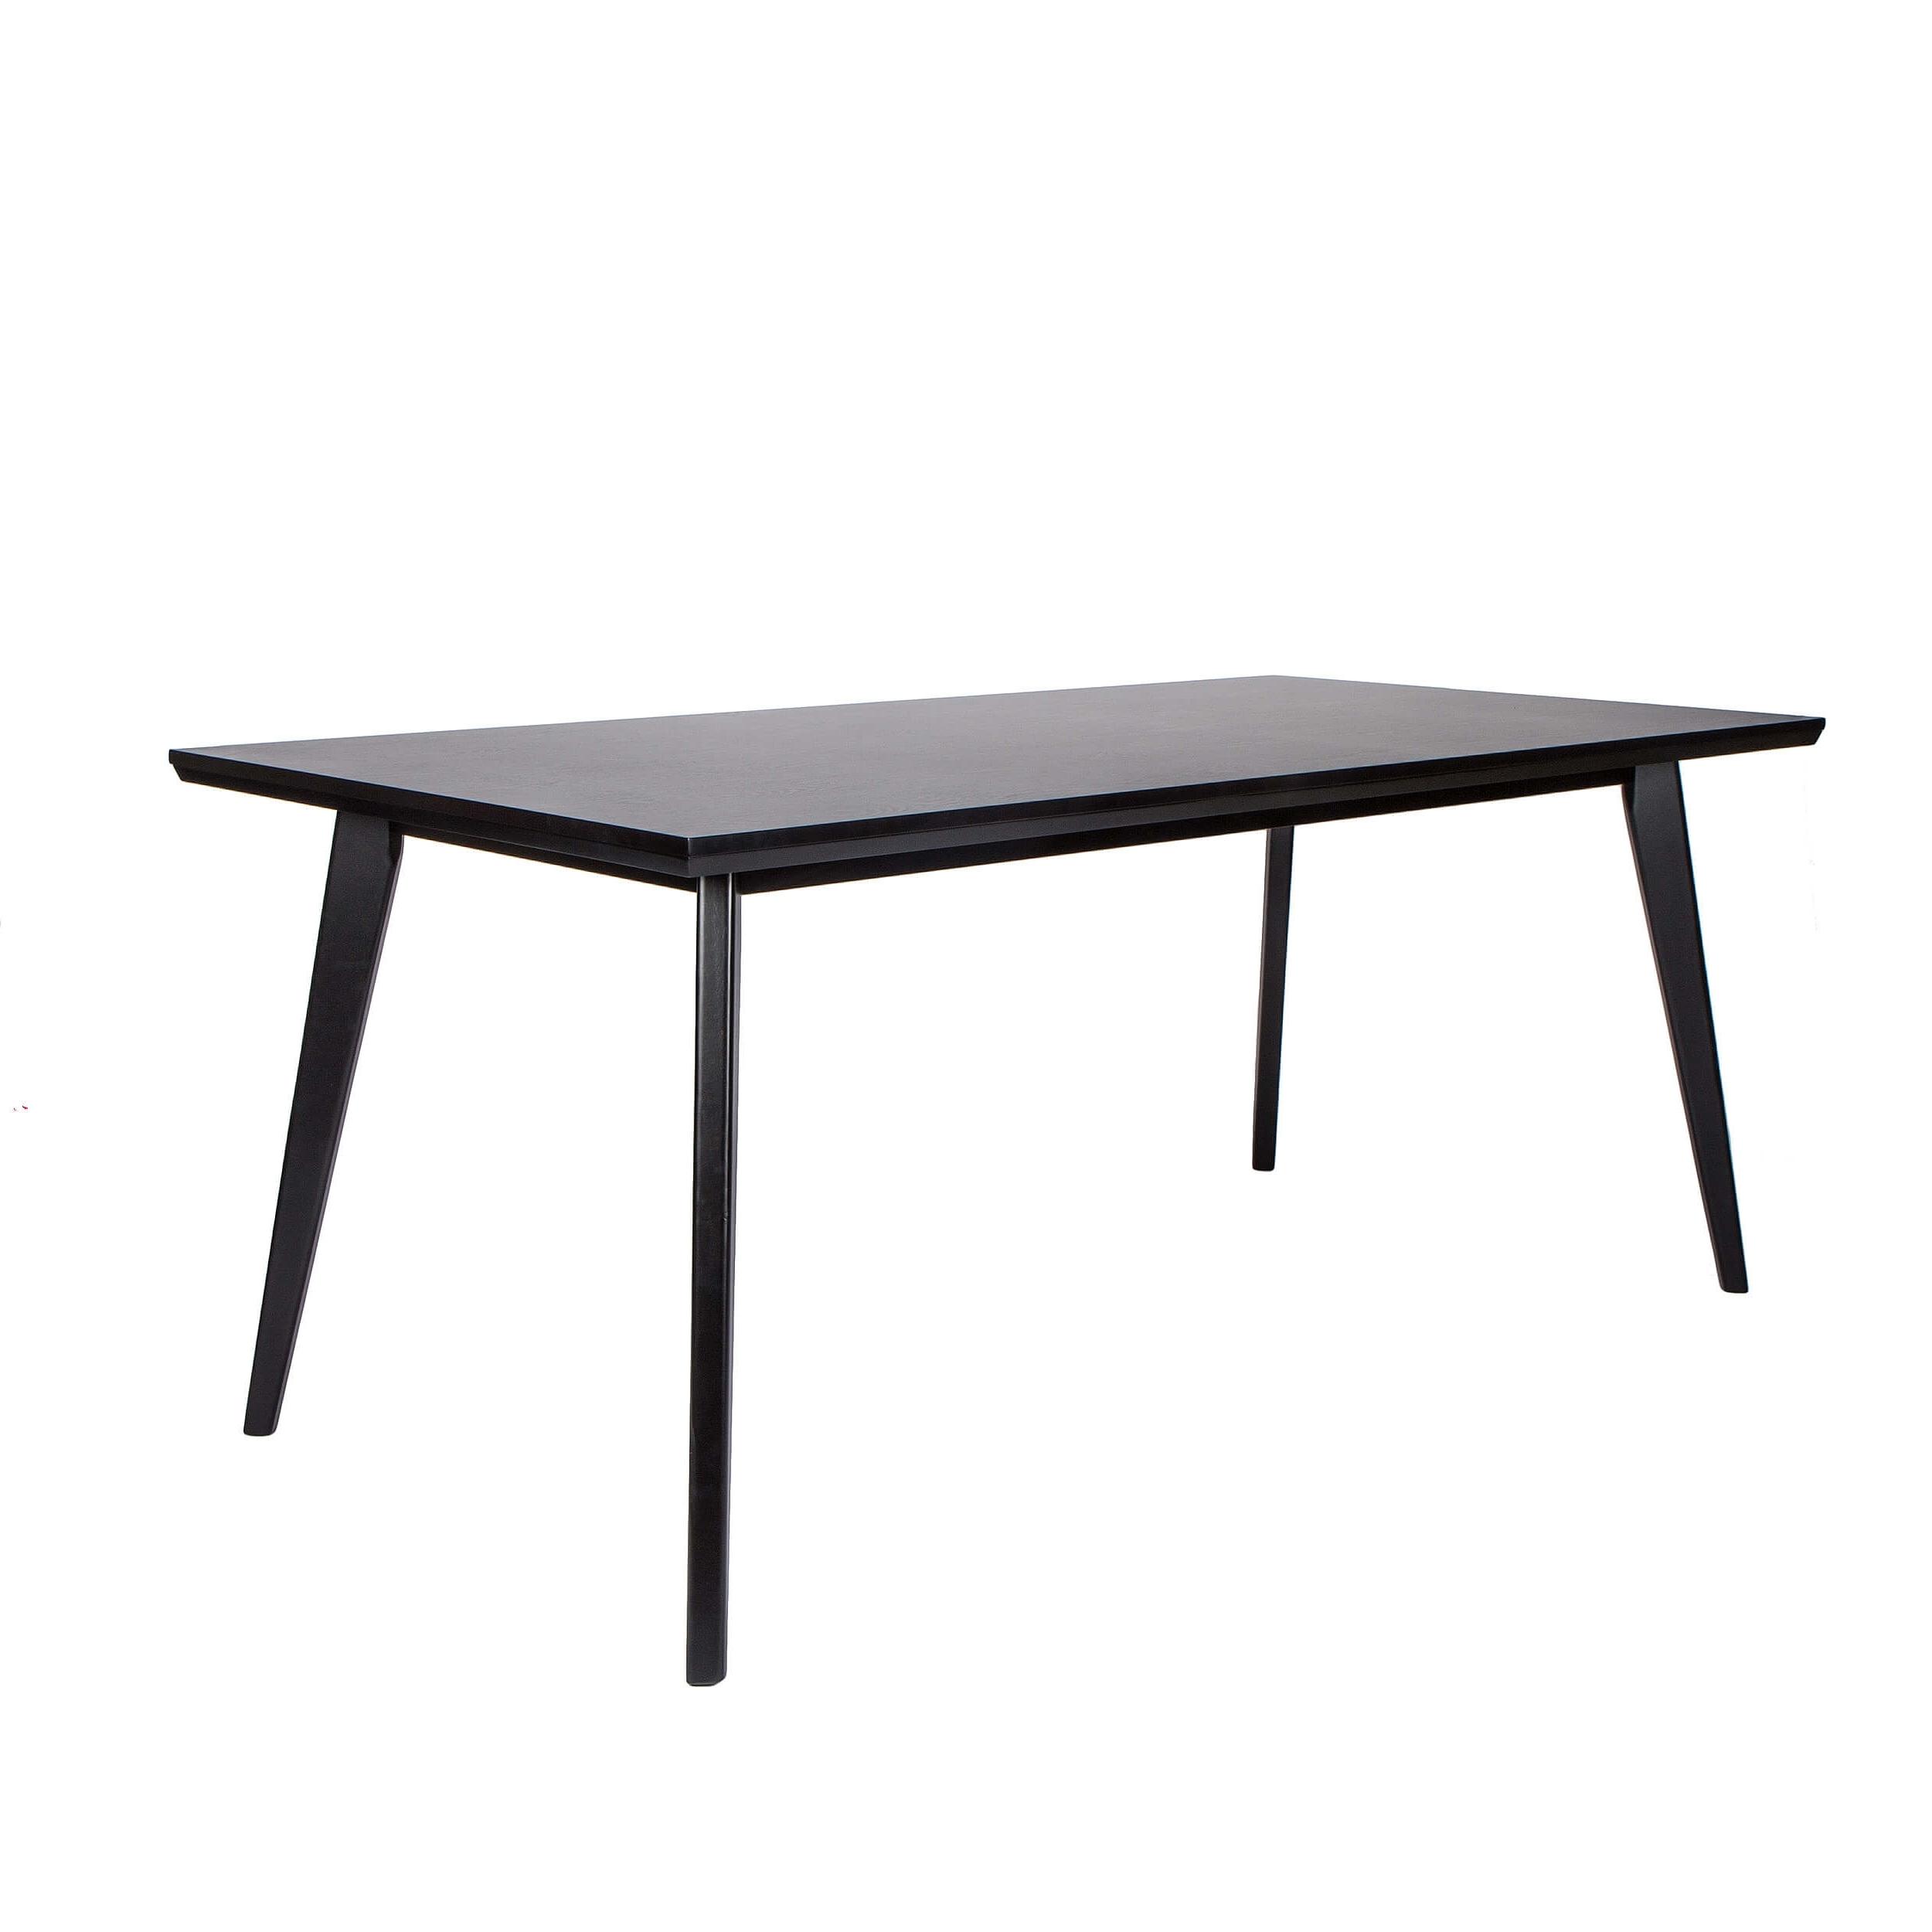 Well Liked Black Dining Table – Rectangular – Seats 6 – Mason With Black Dining Tables (View 3 of 25)